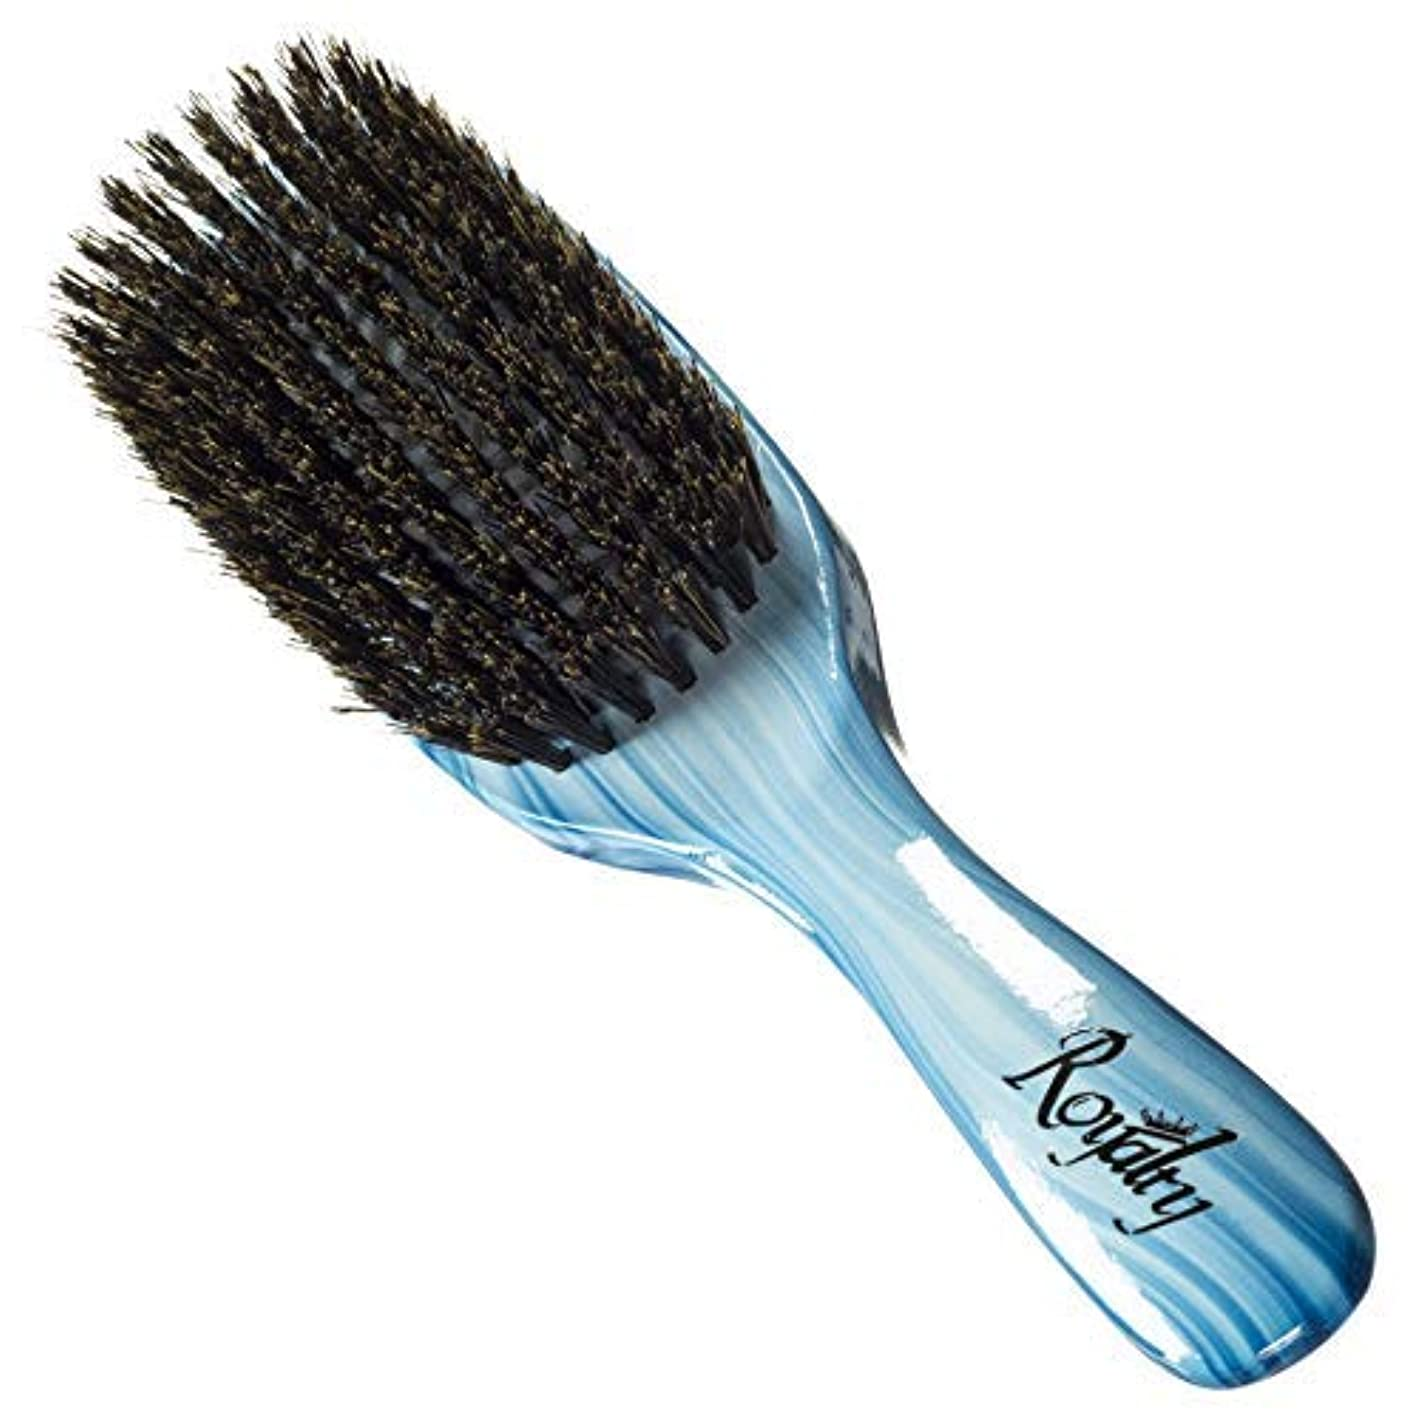 リス遅滞個人的なRoyalty By Brush King Wave Brush #912-9 Row Medium - Great pull - From the maker of Torino Pro 360 waves brushes [並行輸入品]